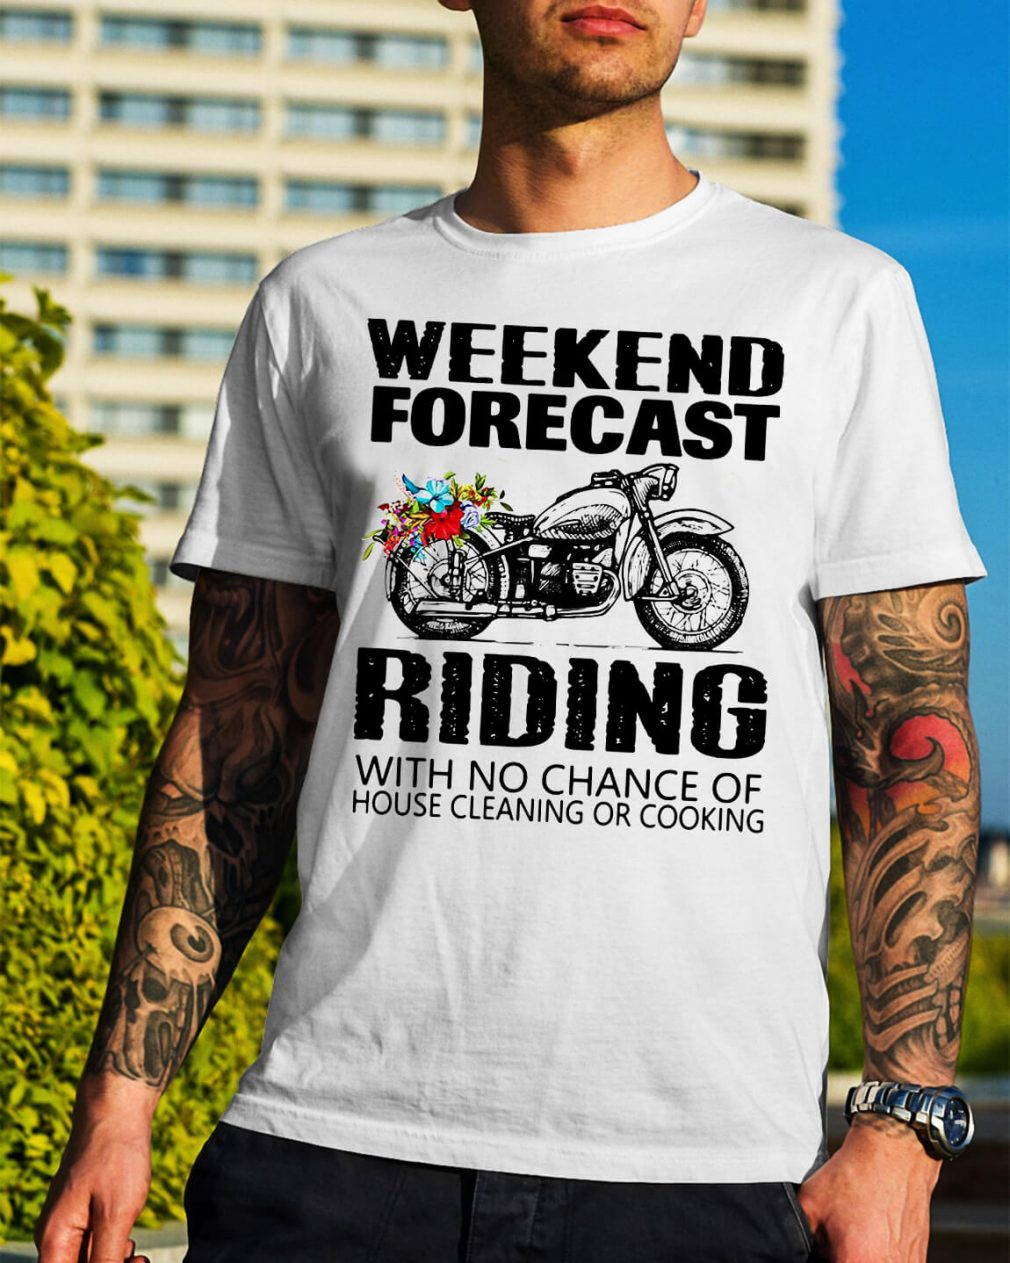 Weekend forecast riding with no chance of house cleaning or cooking shirt